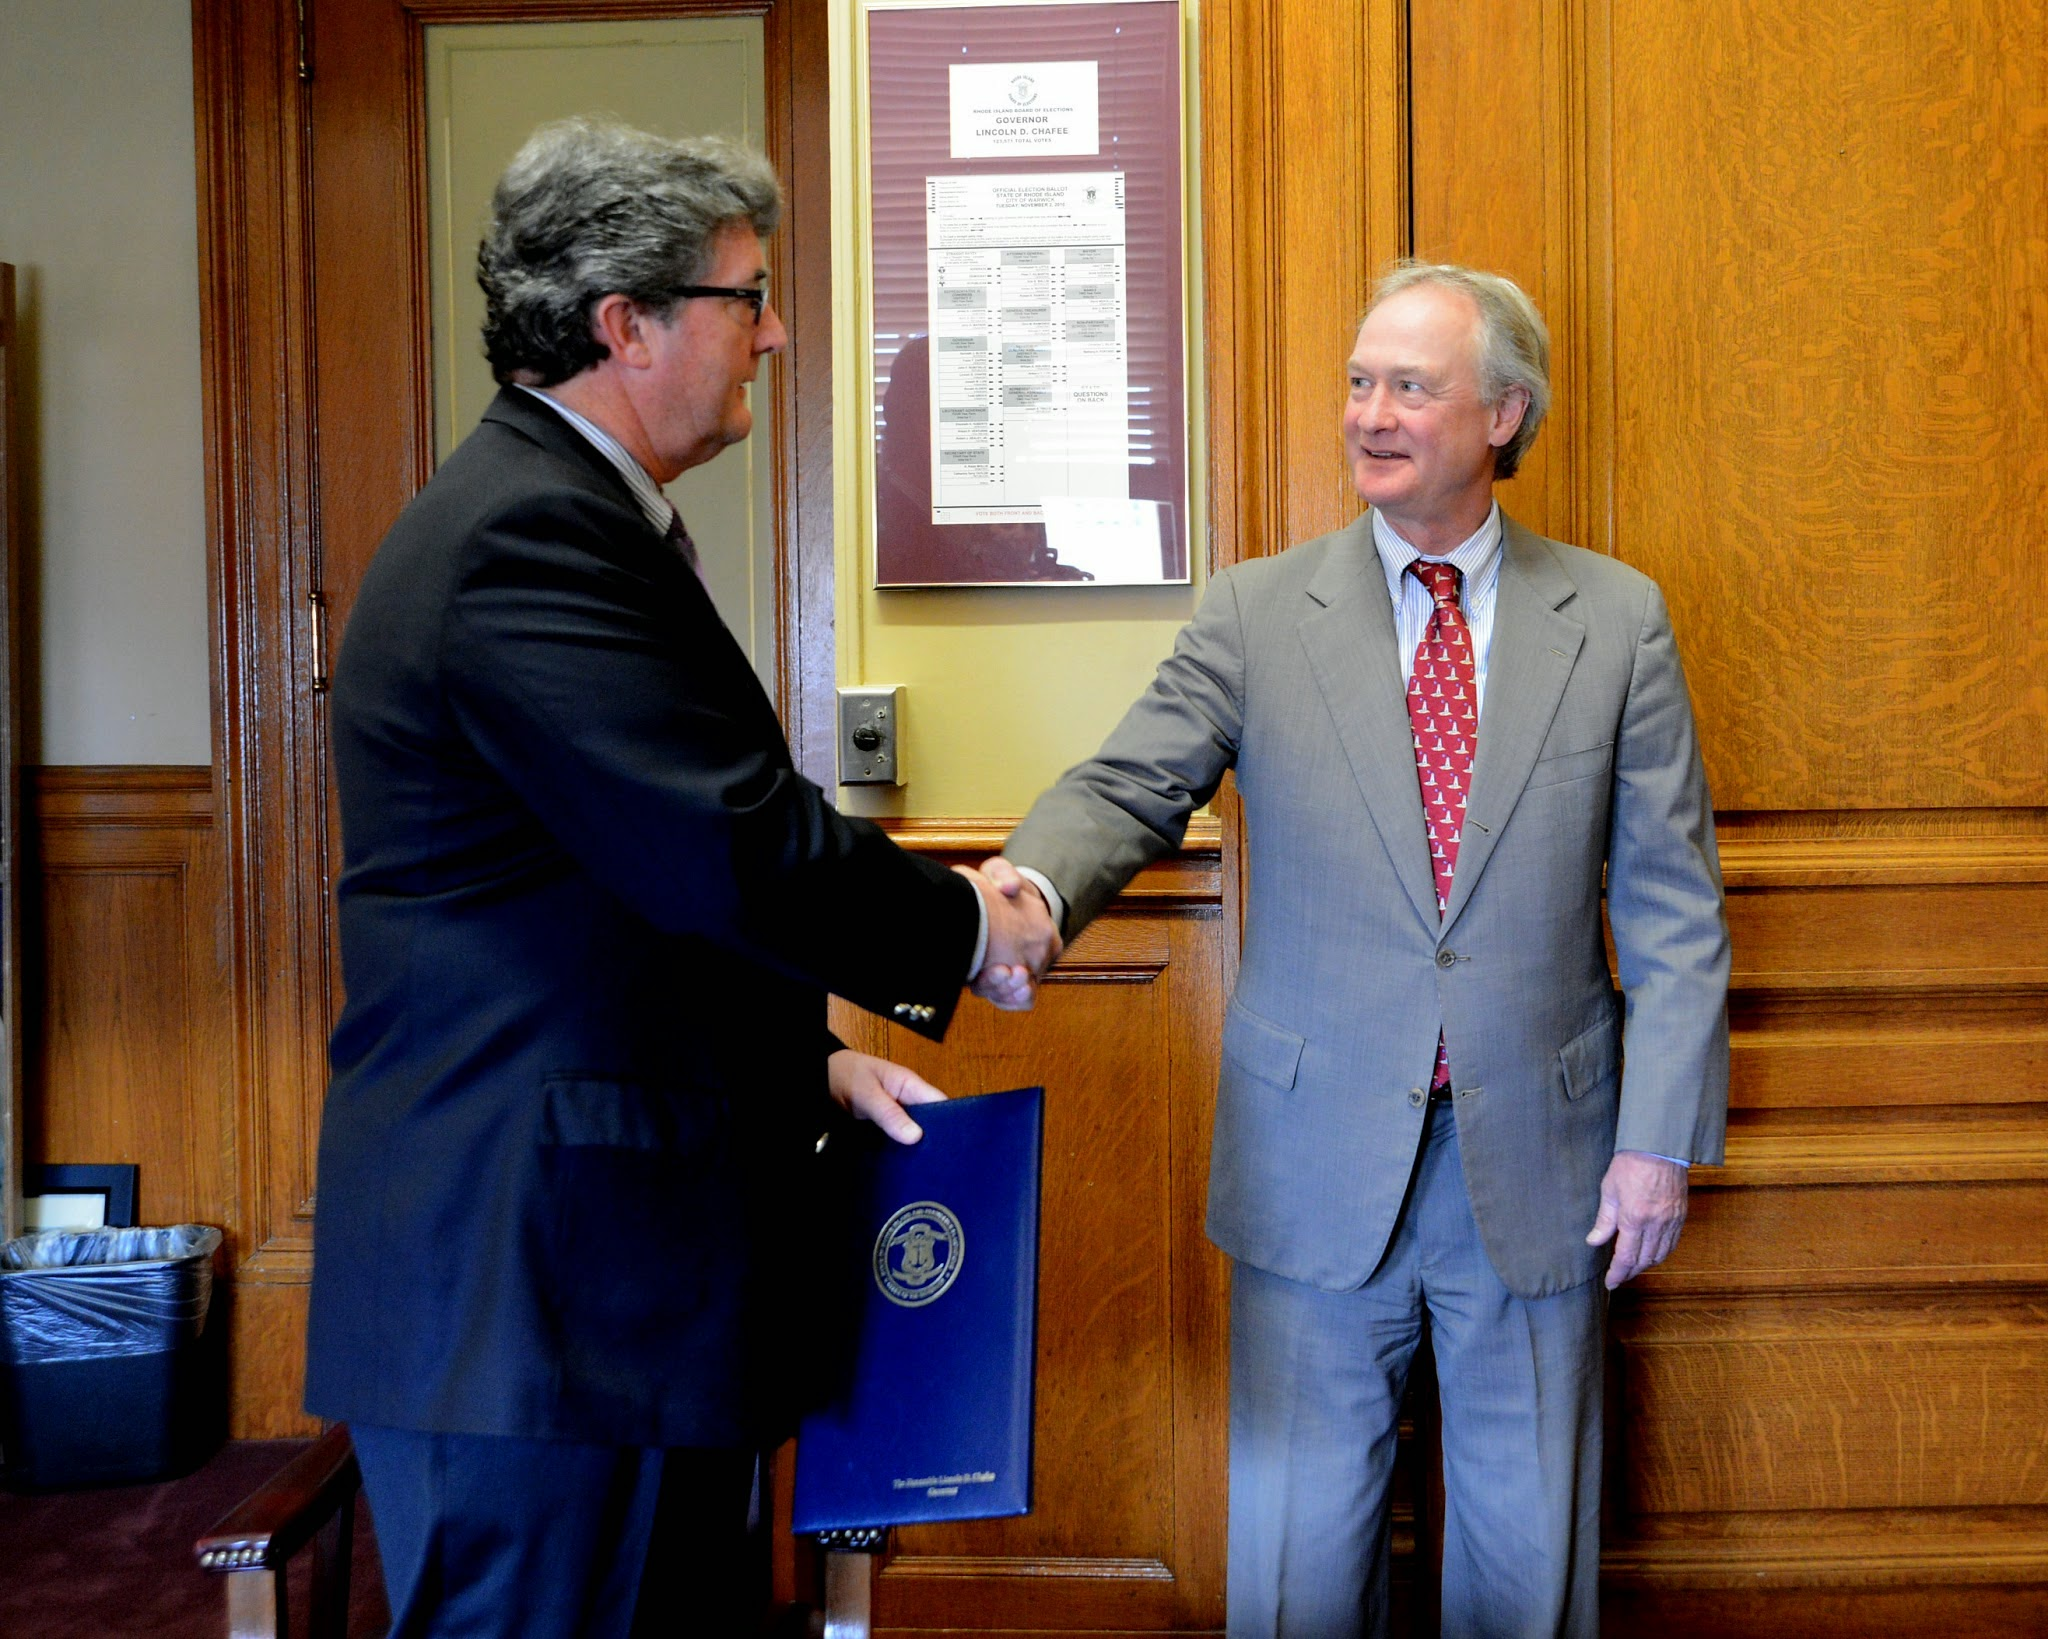 Photo: Rep. Robert Craven is congratulated by Governor Lincoln Chafee after signing his bill on May 6, 2014.  Rep. Craven's legislation saved a $6 million federal grant awarded to the Quonset Development Corporation by the federal government.